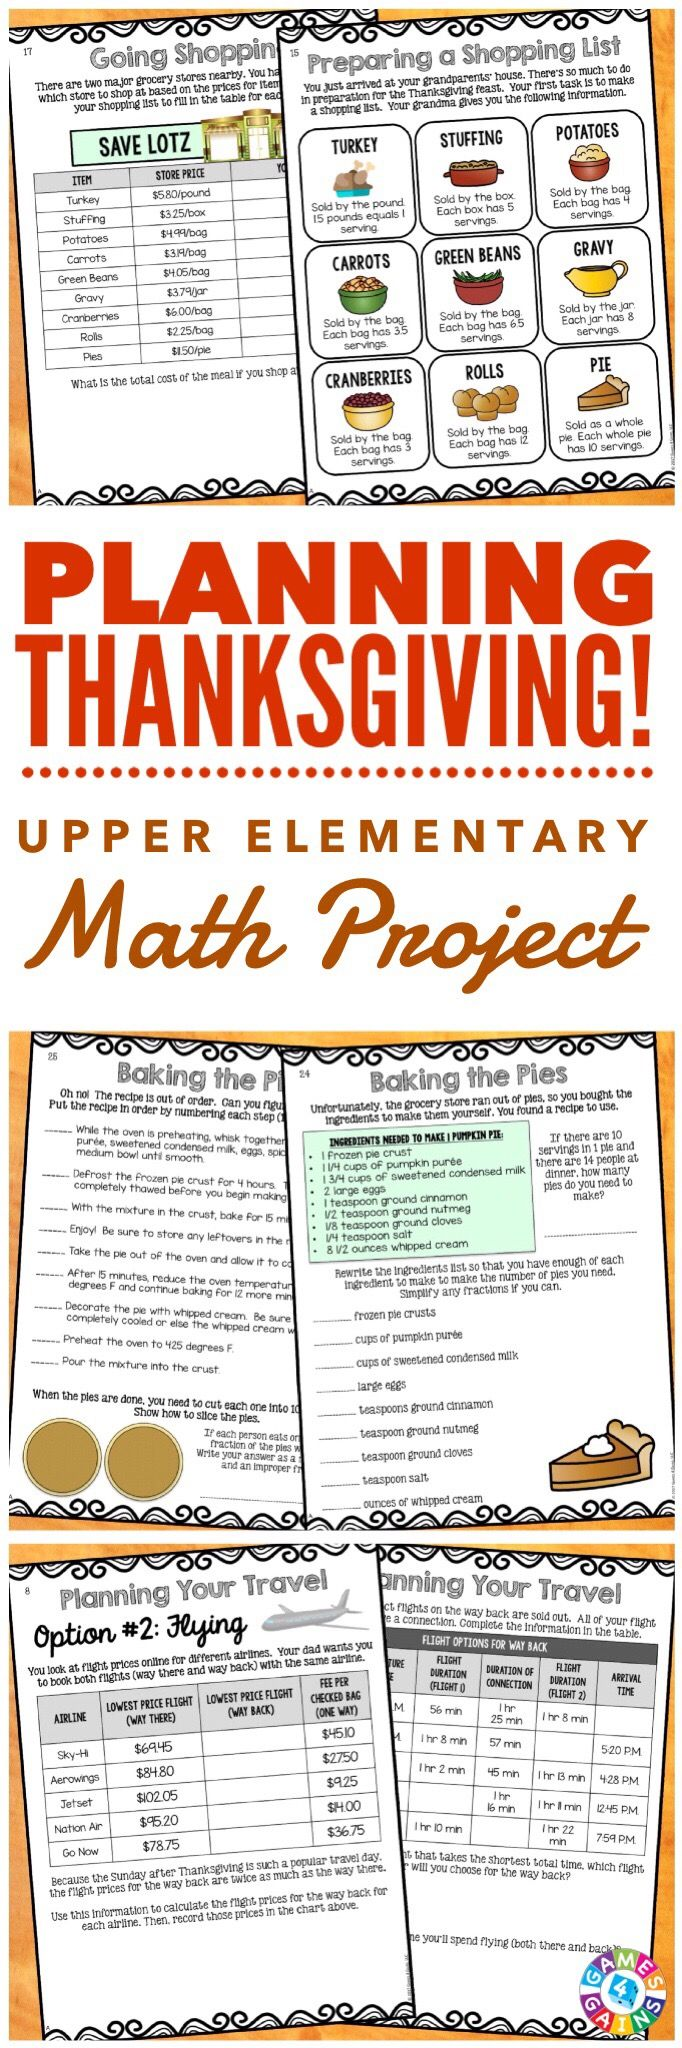 """""""Absolutely Fabulous! These type of projects entertain my students while reinforcing the skills they learned during the year."""" This Planning Thanksgiving Math Project gets students practicing a variety of key math skills while working their way through a fun real-world scenario. Students will have a blast planning the details of their family's Thanksgiving dinner.  They must determine travel plans, plan for their shopping trip and purchase food for Thanksgiving dinner, and much more!"""